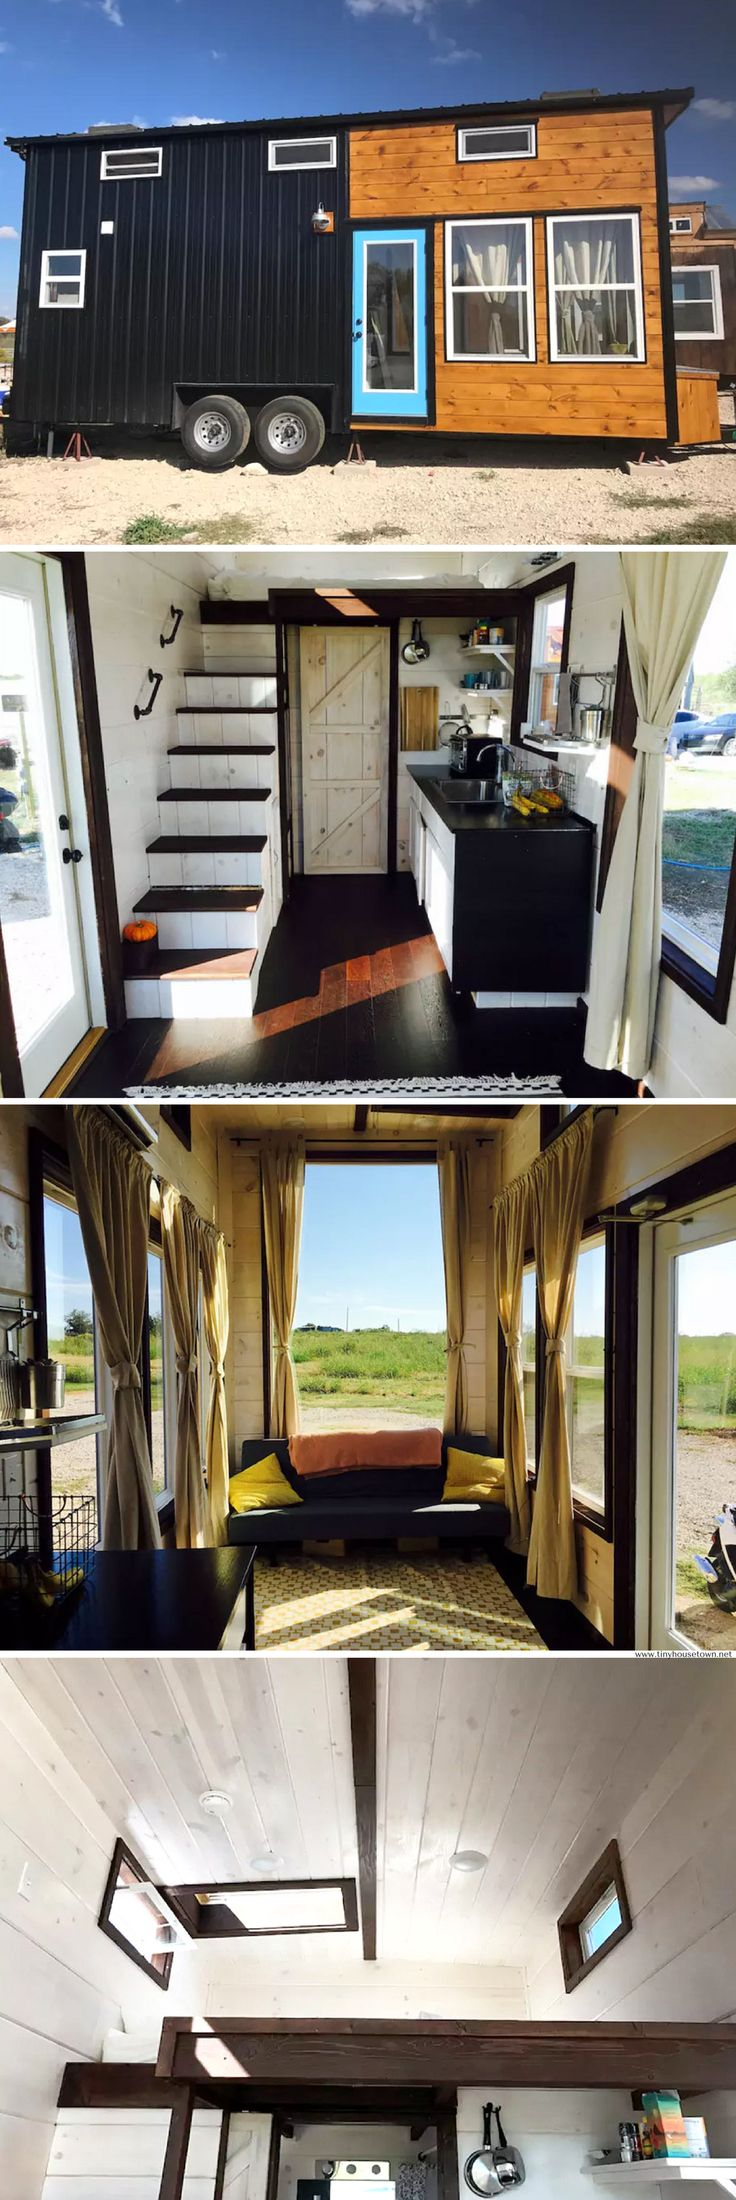 Best Tiny House Love Images On Pinterest Tiny Homes Tiny